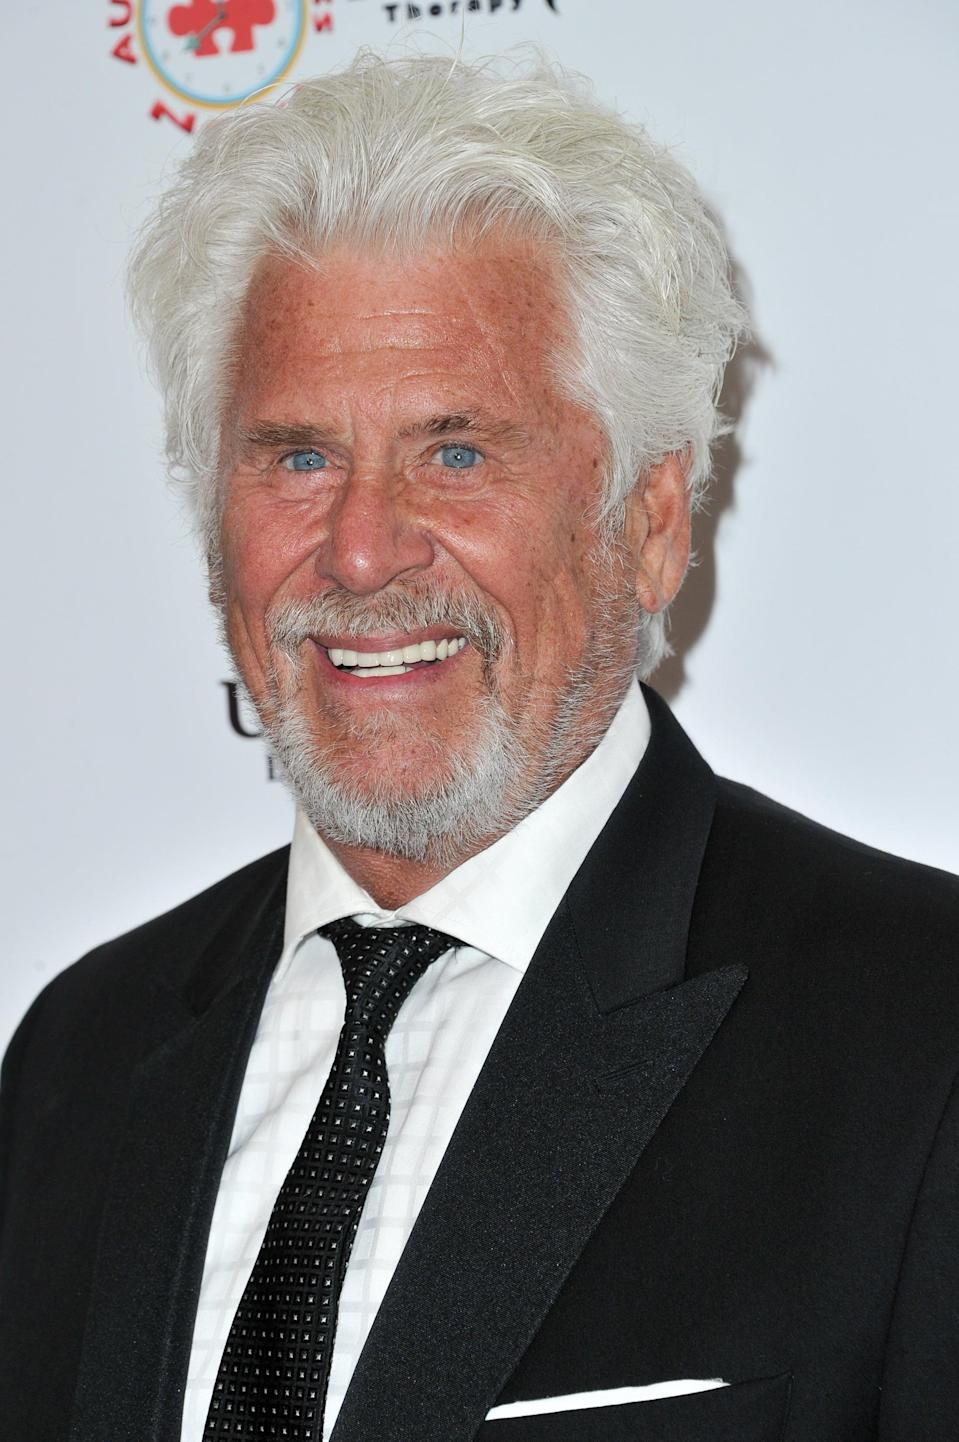 <p>Stage and screen legend Bostwick is tackling a supporting role in this rom-com as the latest move in a widely varied career. He's best known for his comedy roles, having played Brad in <strong>The Rocky Horror Picture Show</strong> and Mayor Winston on the sitcom <strong>Spin City</strong>. Bostwick also has quite the résumé in the theater world - did you know he was the original Danny Zuko in <strong>Grease</strong> on Broadway?</p>